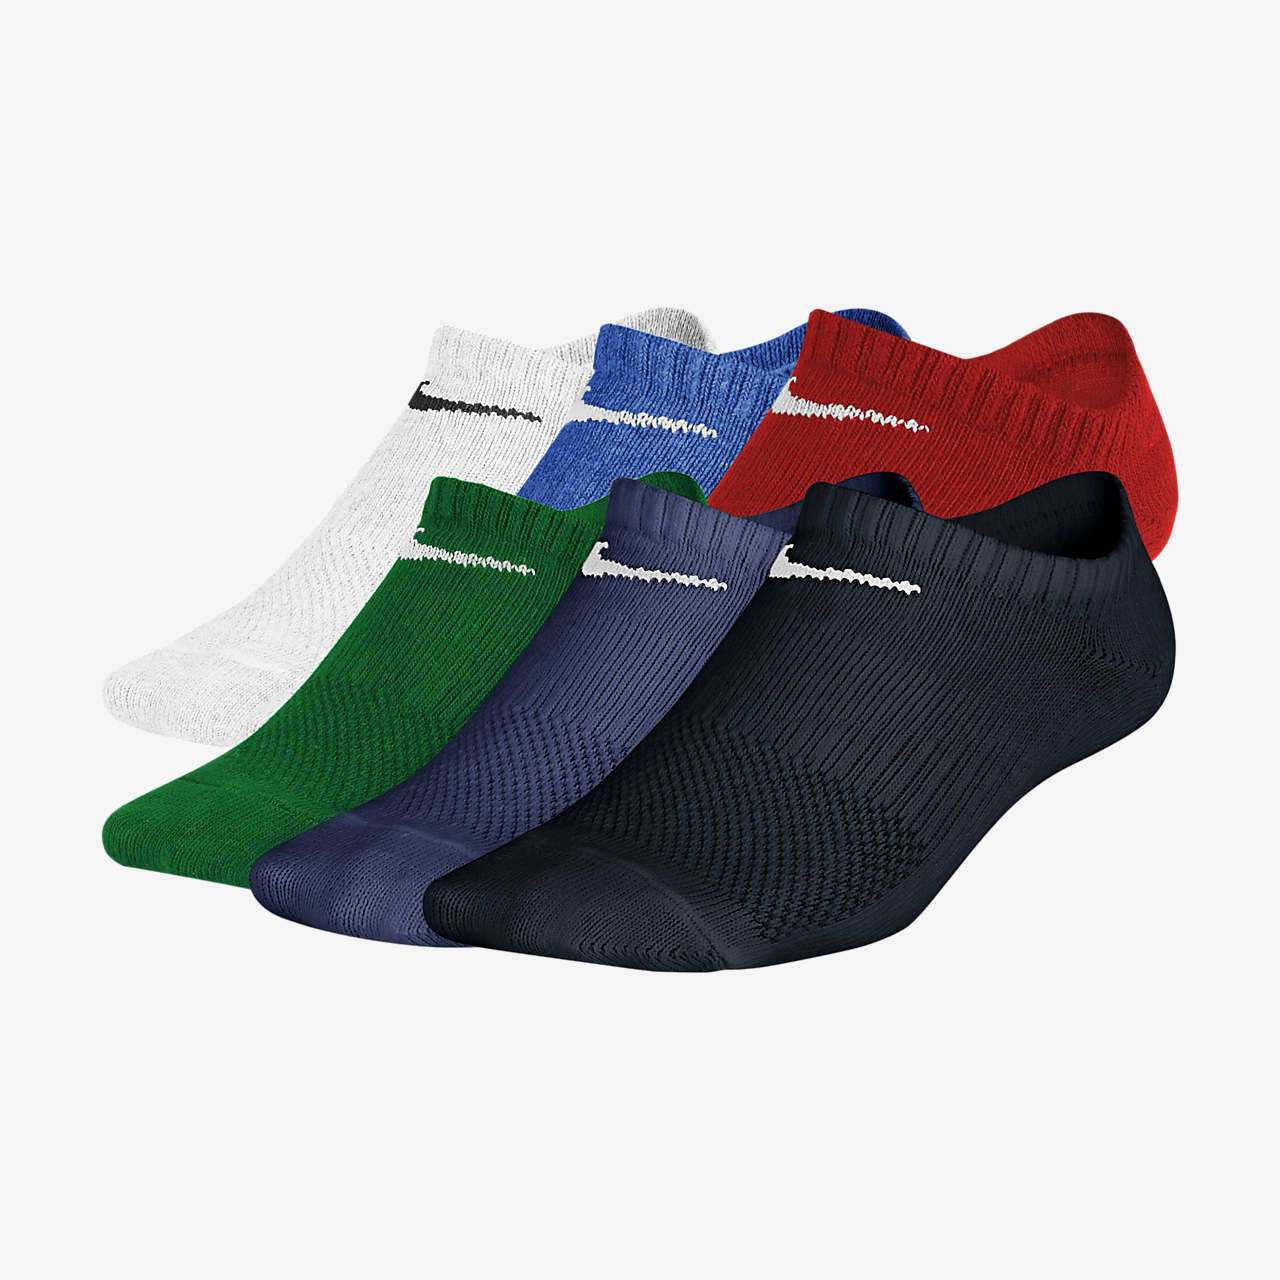 Chaussettes De Training Nike Performance Lightweight No Show Pour Pour Pour 02eb2d